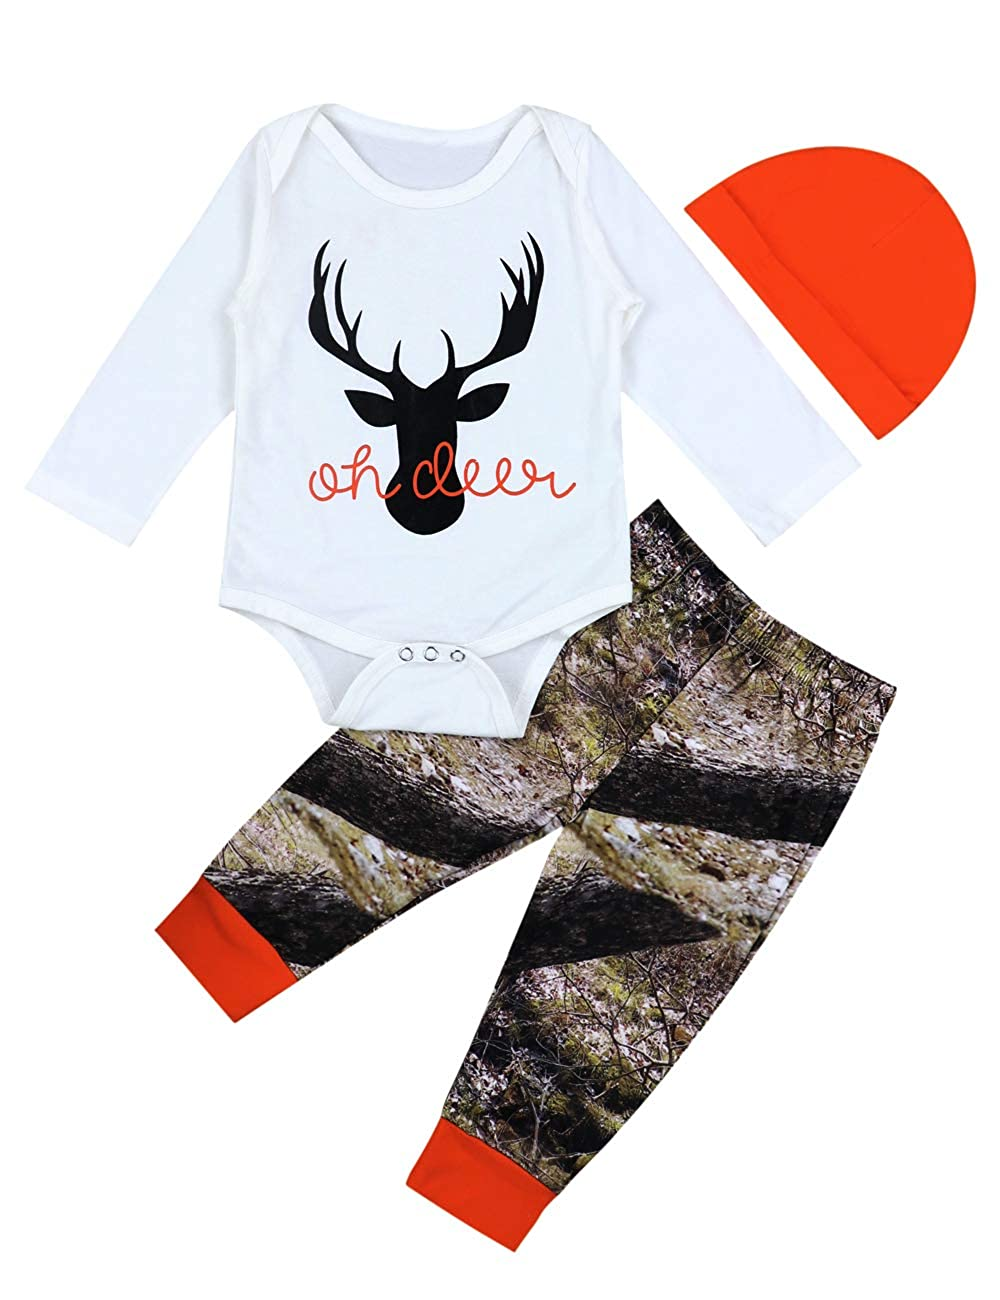 Newborn Baby Boys Girls Christmas Plaid Cardigan Romper Christmas Outfit with Moose Embroidery 2Pcs Outfit Set itkidboy